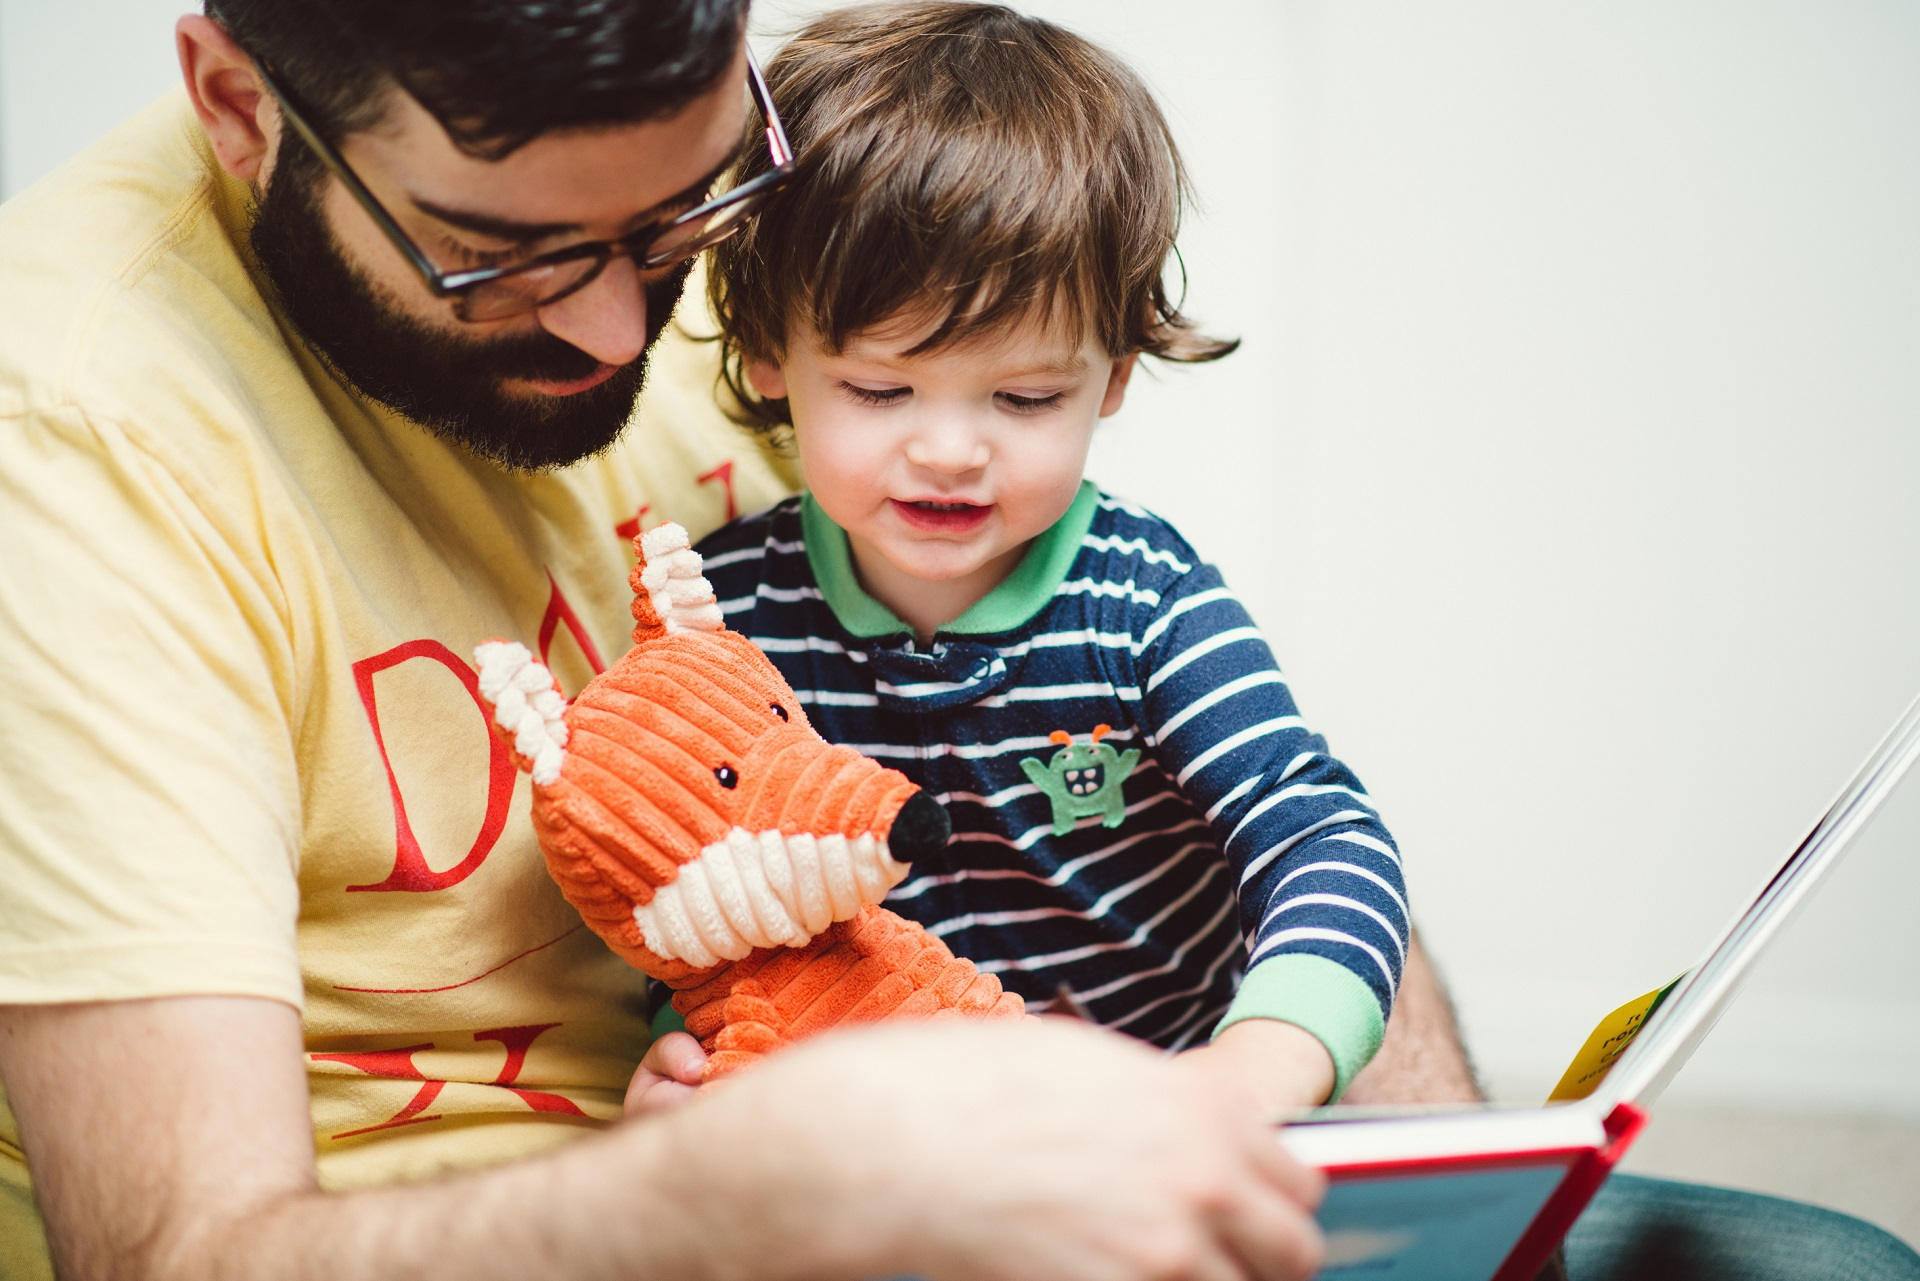 Adult male child and toy fox reading a picture book together